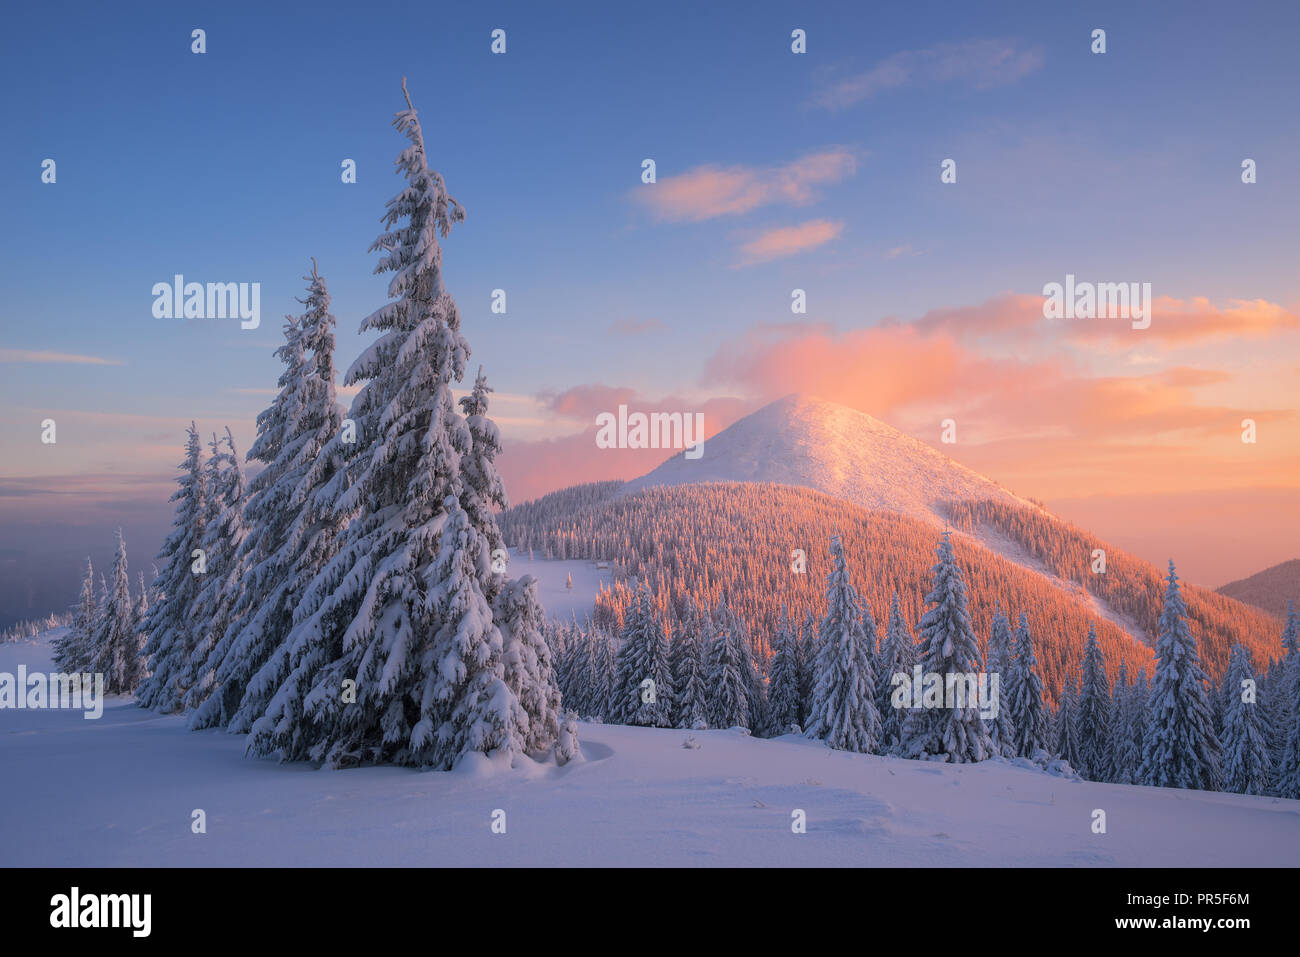 Christmas landscape with fir trees in the snow. Winter in the ...